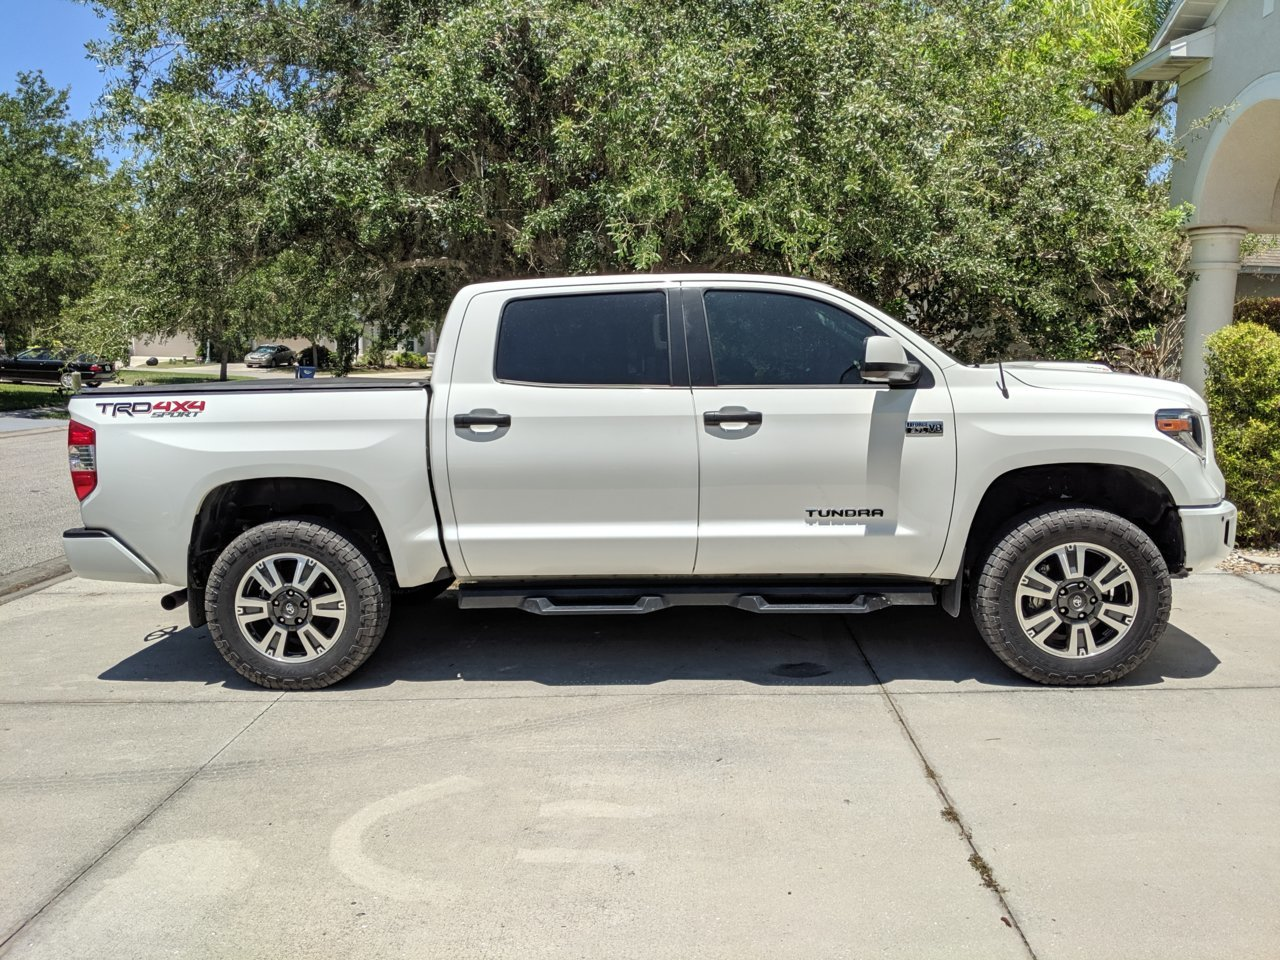 photo 2 Toyota Tundra Wheels TRD  Sport  20x, ET , tire size 275/65 R20. x ET